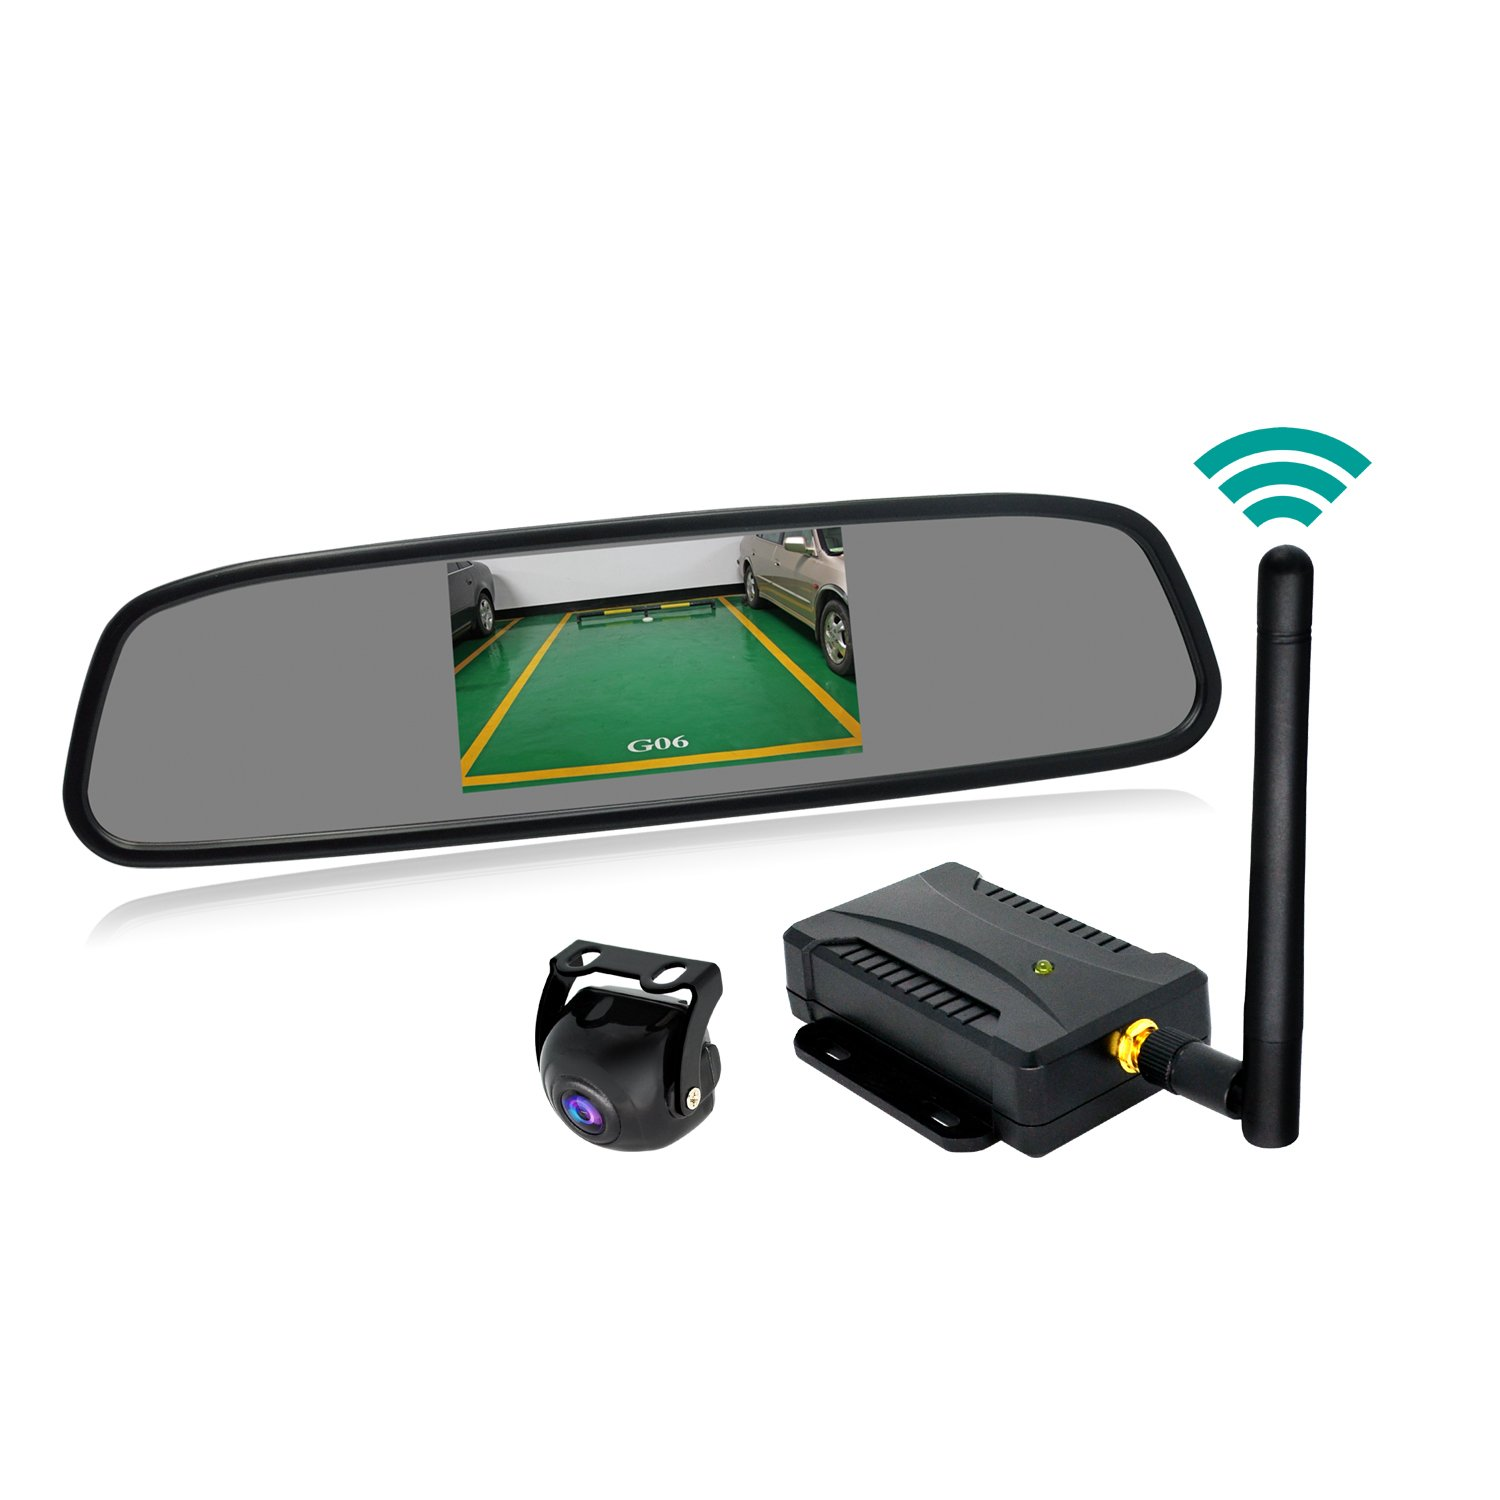 Wireless Backup Camera System 43 Inch Rear View Mirror Plcm7200 Wiring Diagram Monitor And Waterproof 170 Wide Angel High Definition Reverse Back Up For Rv